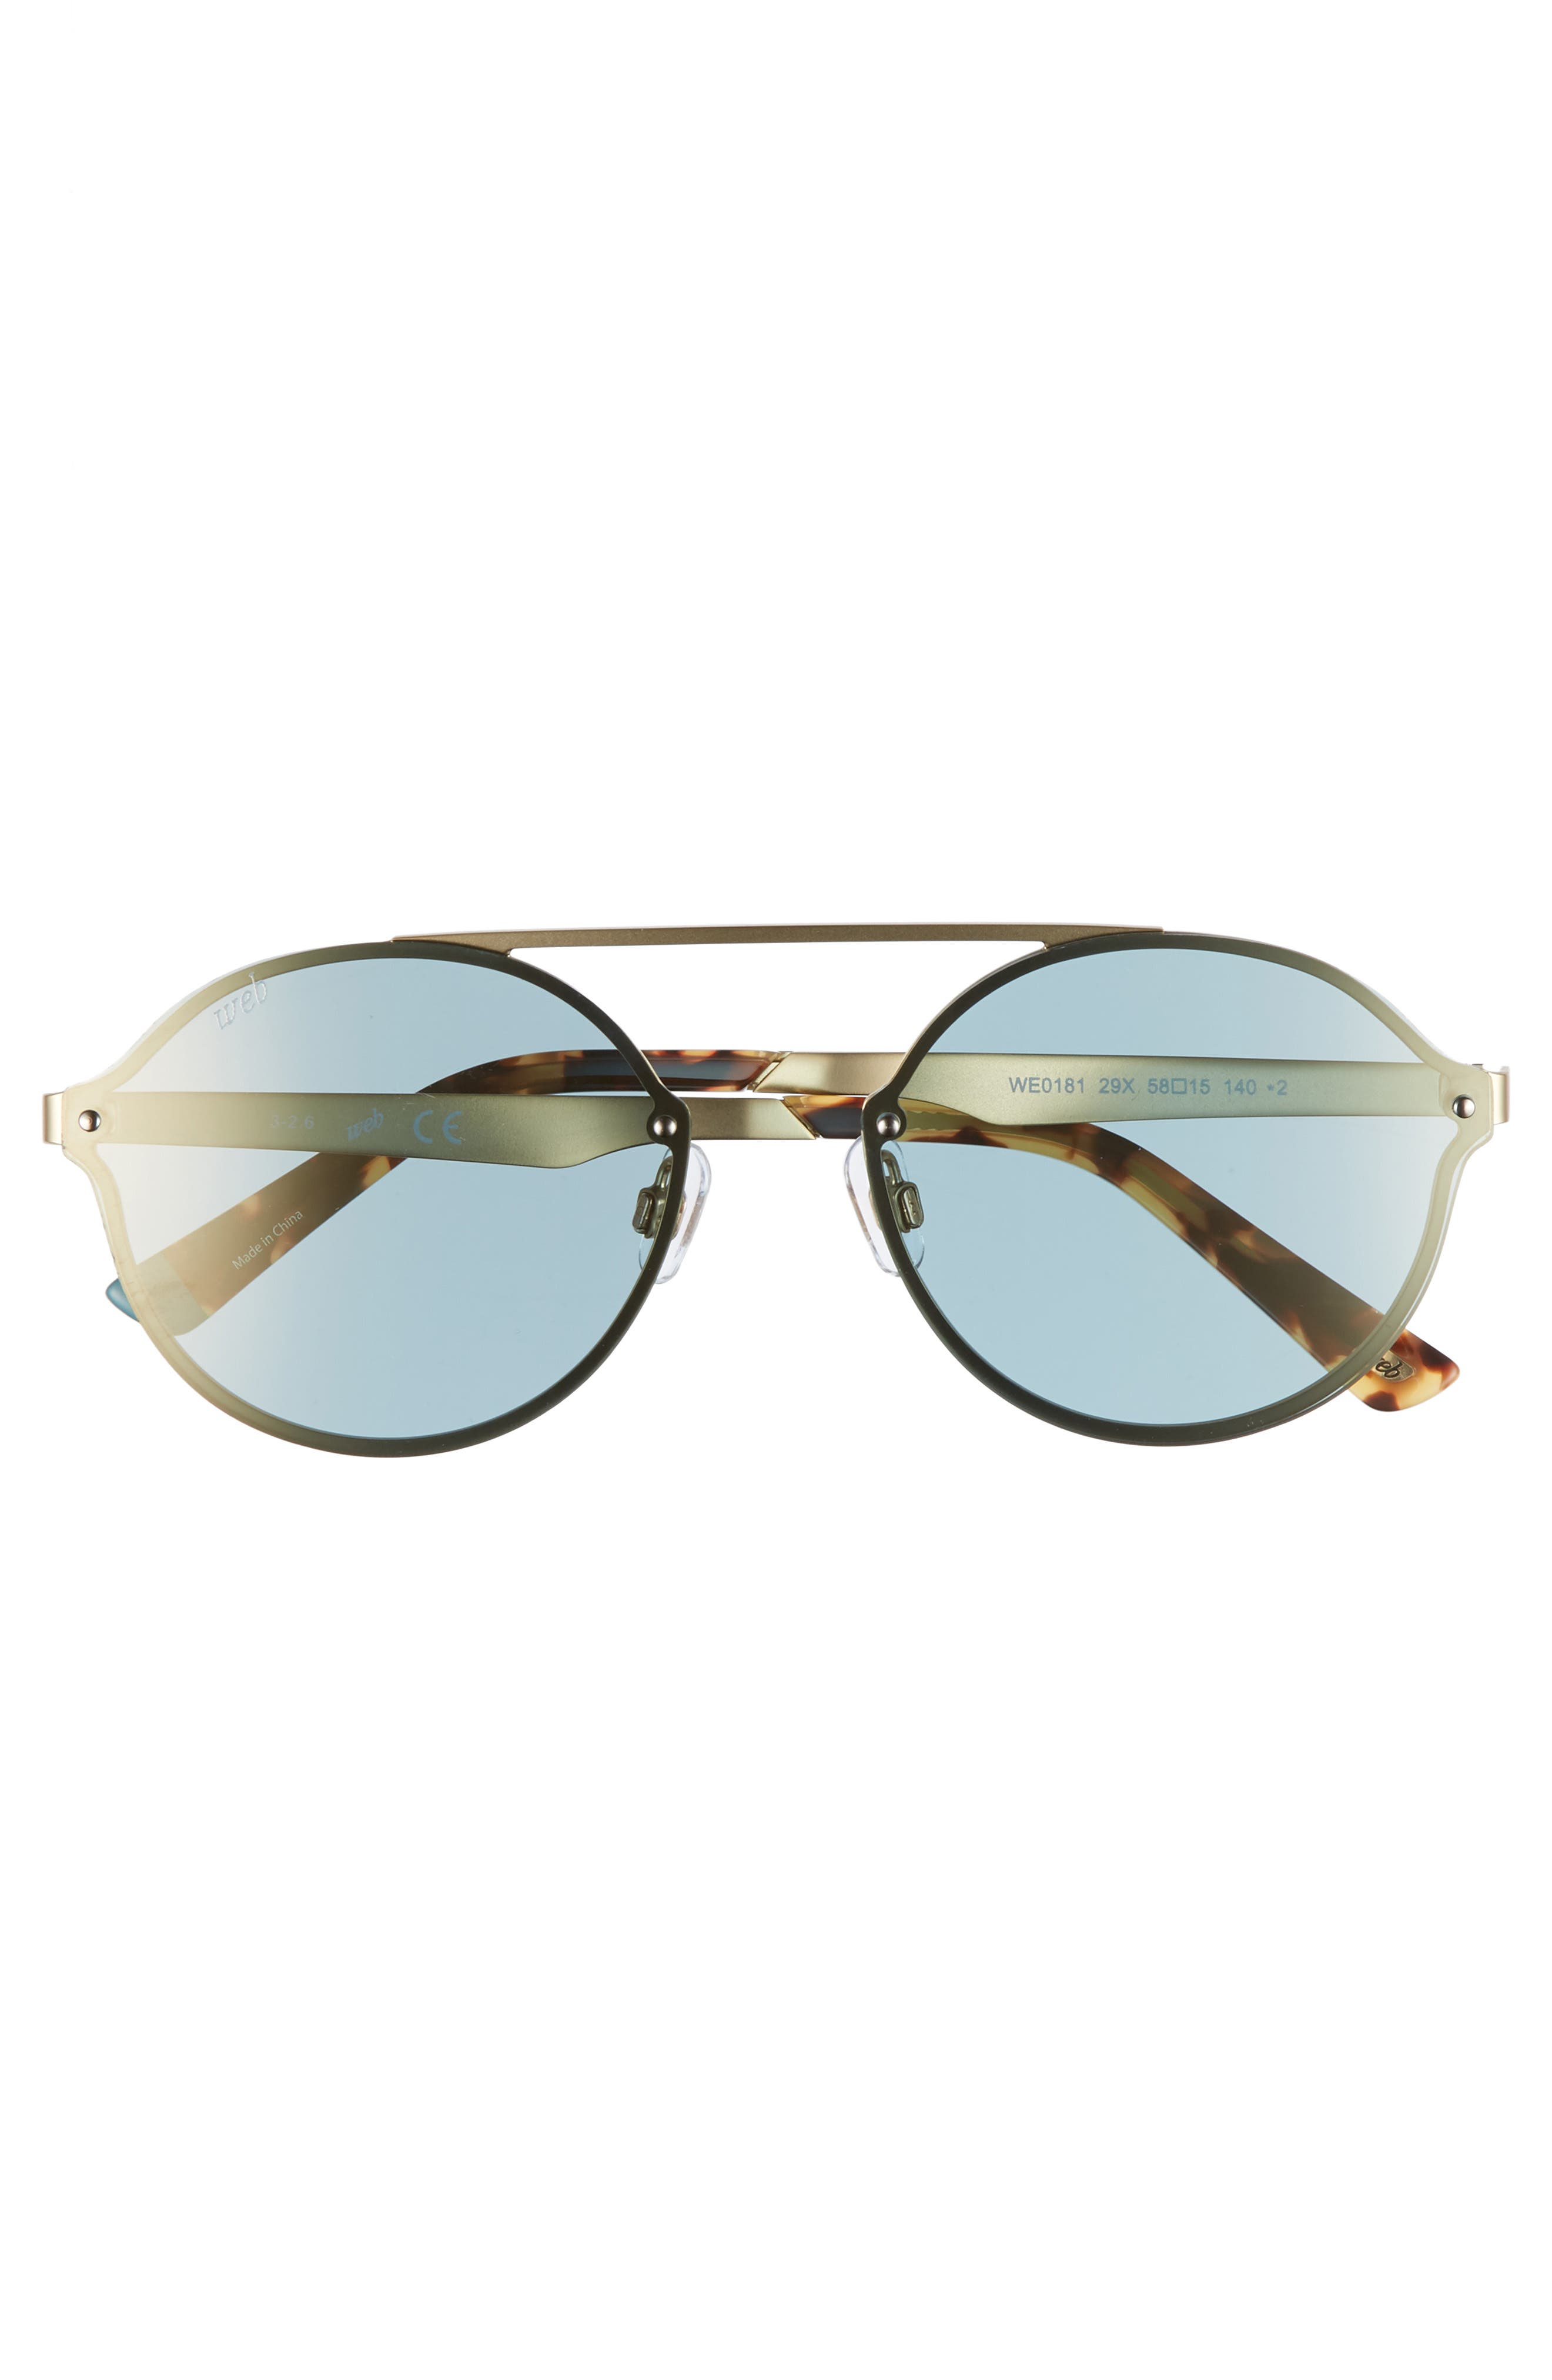 58mm Round Sunglasses,                             Alternate thumbnail 3, color,                             Gold/ Blue